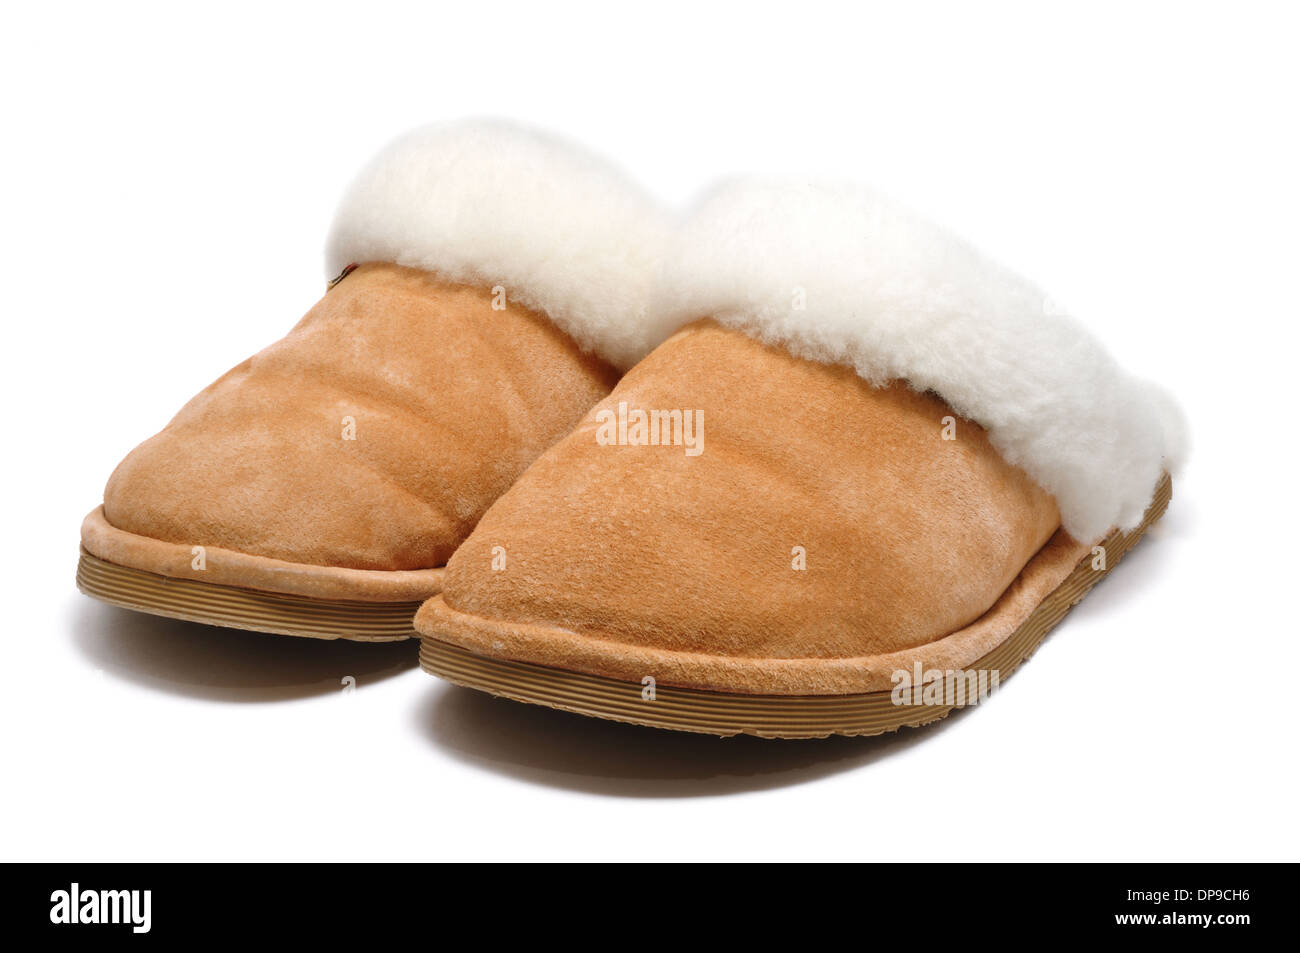 Pair of comfy, fluffy leather slippers - Stock Image